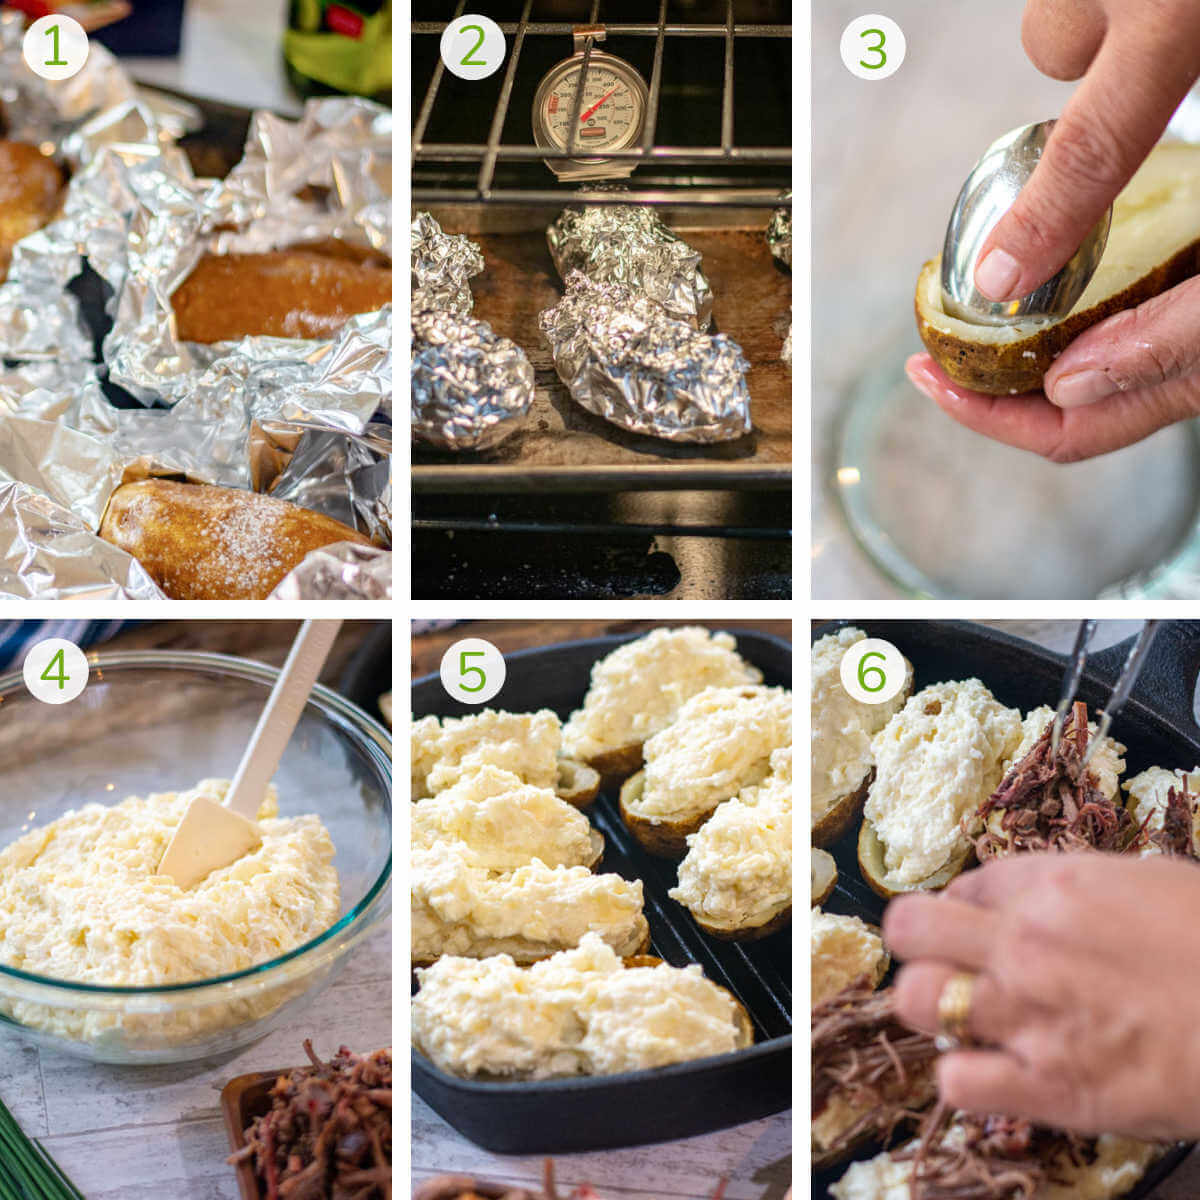 process photos showing baking the potatoes, scooping out the center, mixing and loading with brisket.